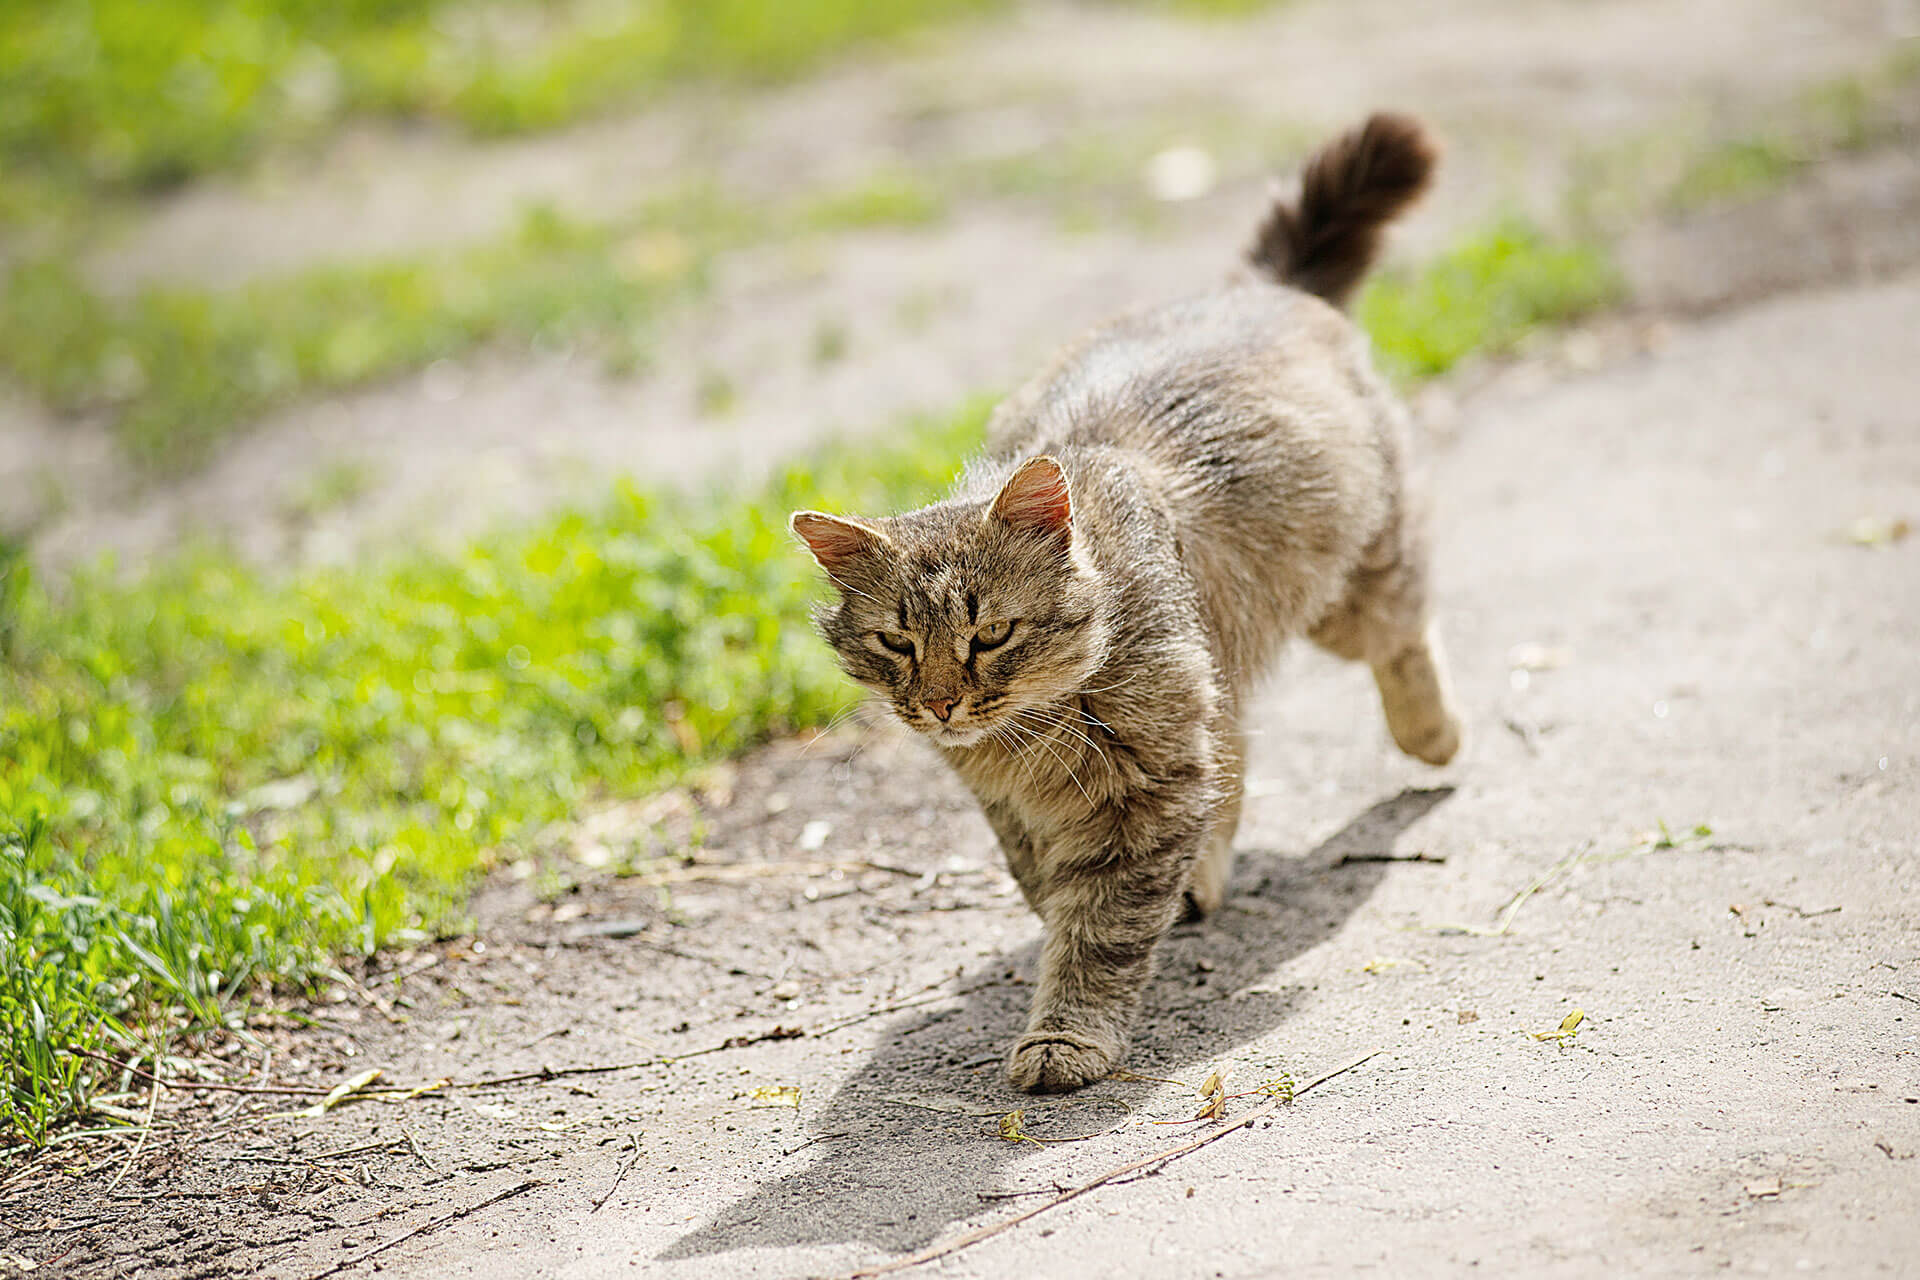 Cat sense of direction: How cats always find their way home